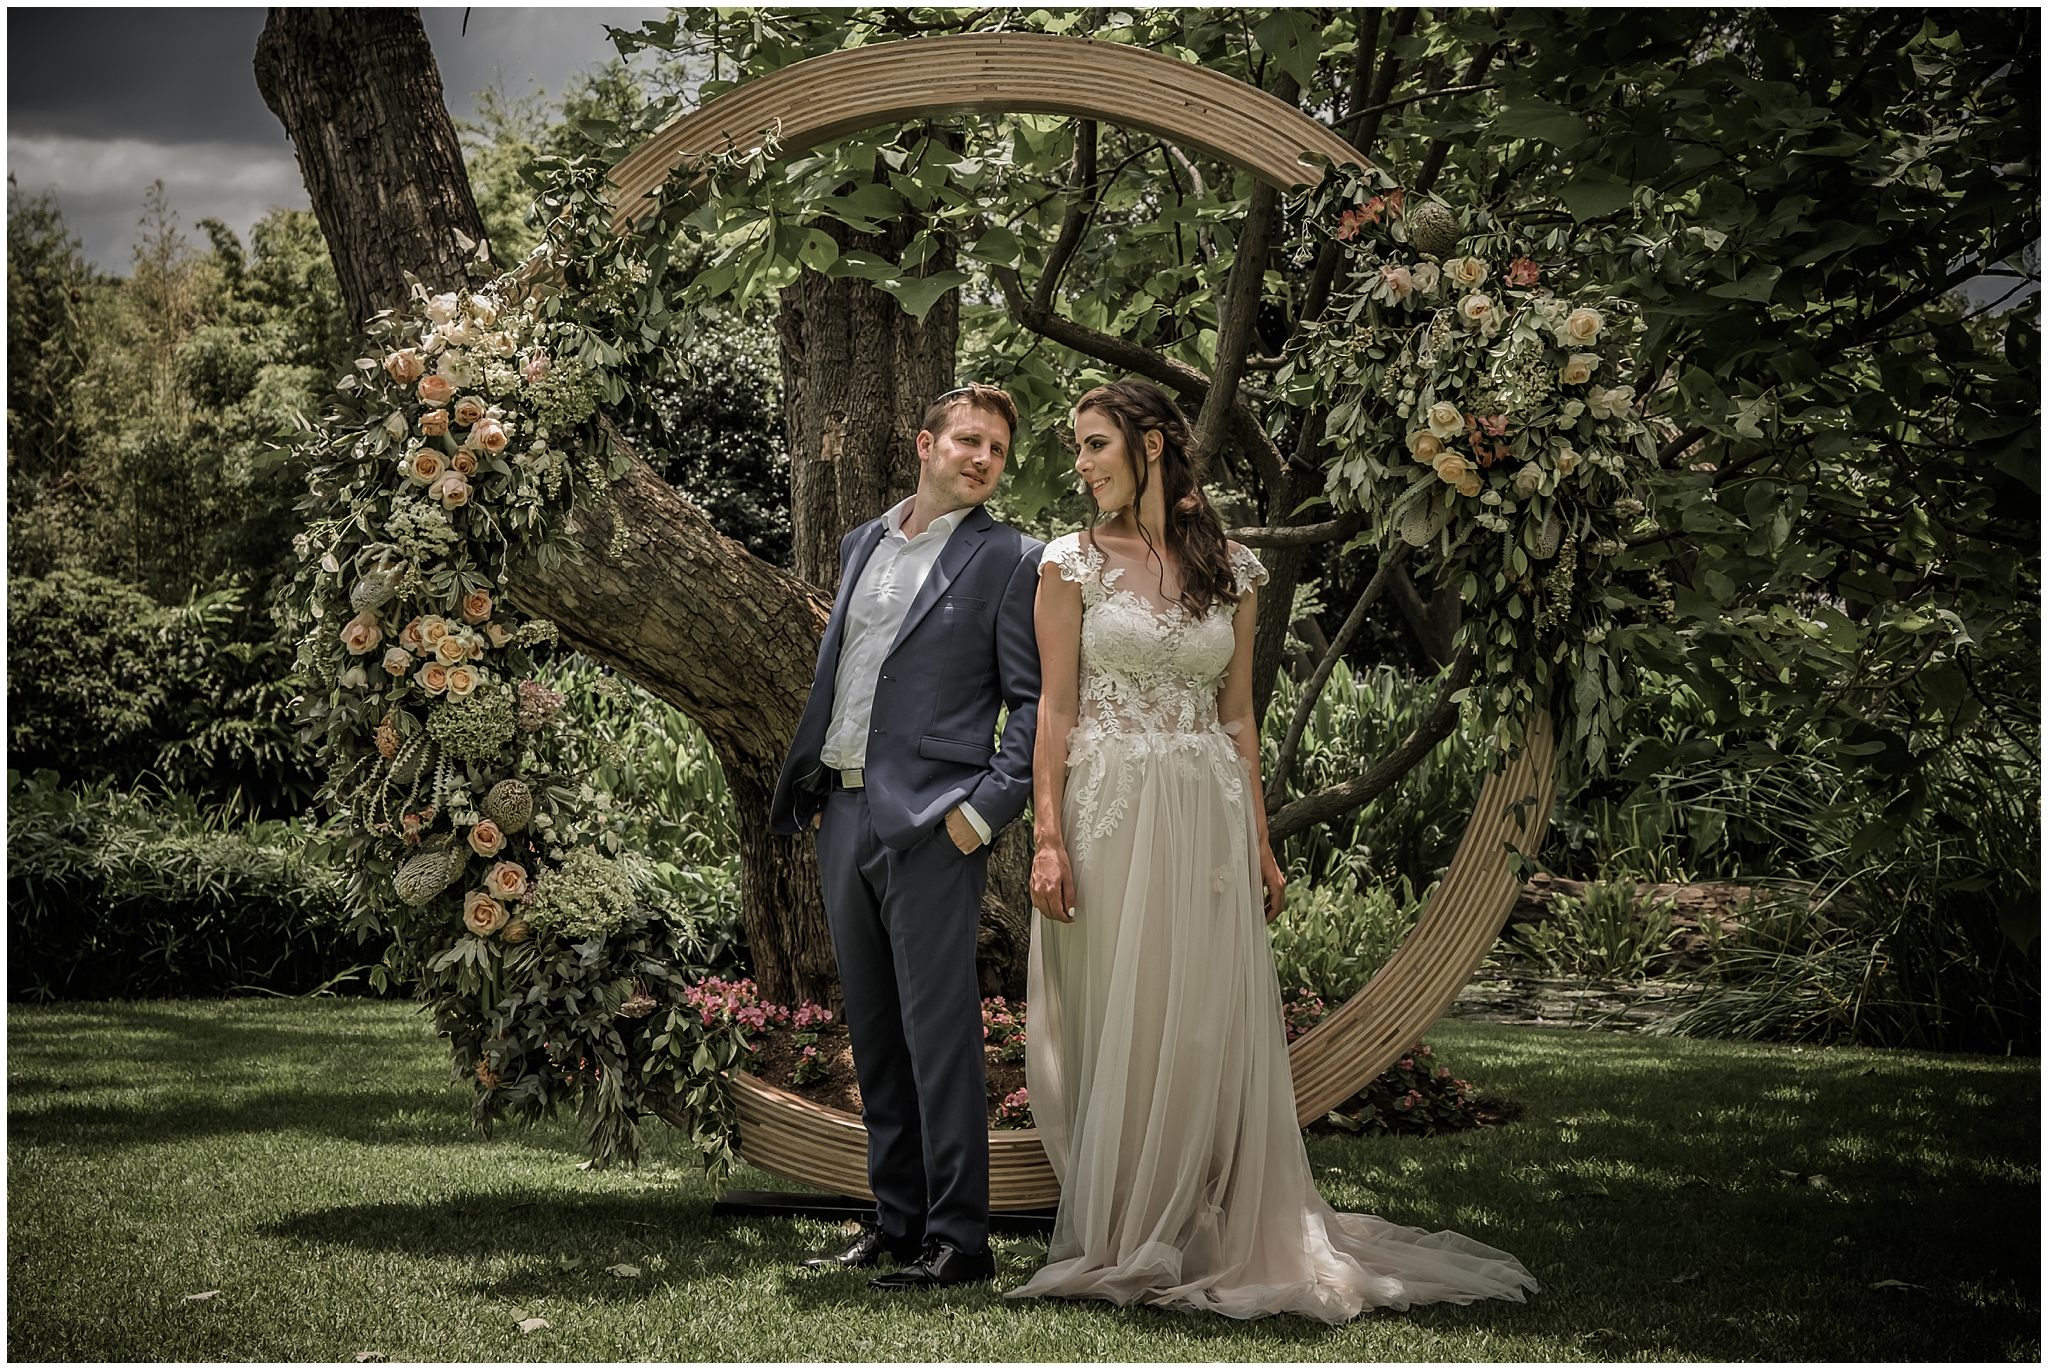 Protected: Ilan and Kaylea's wedding at Beechwood gardens